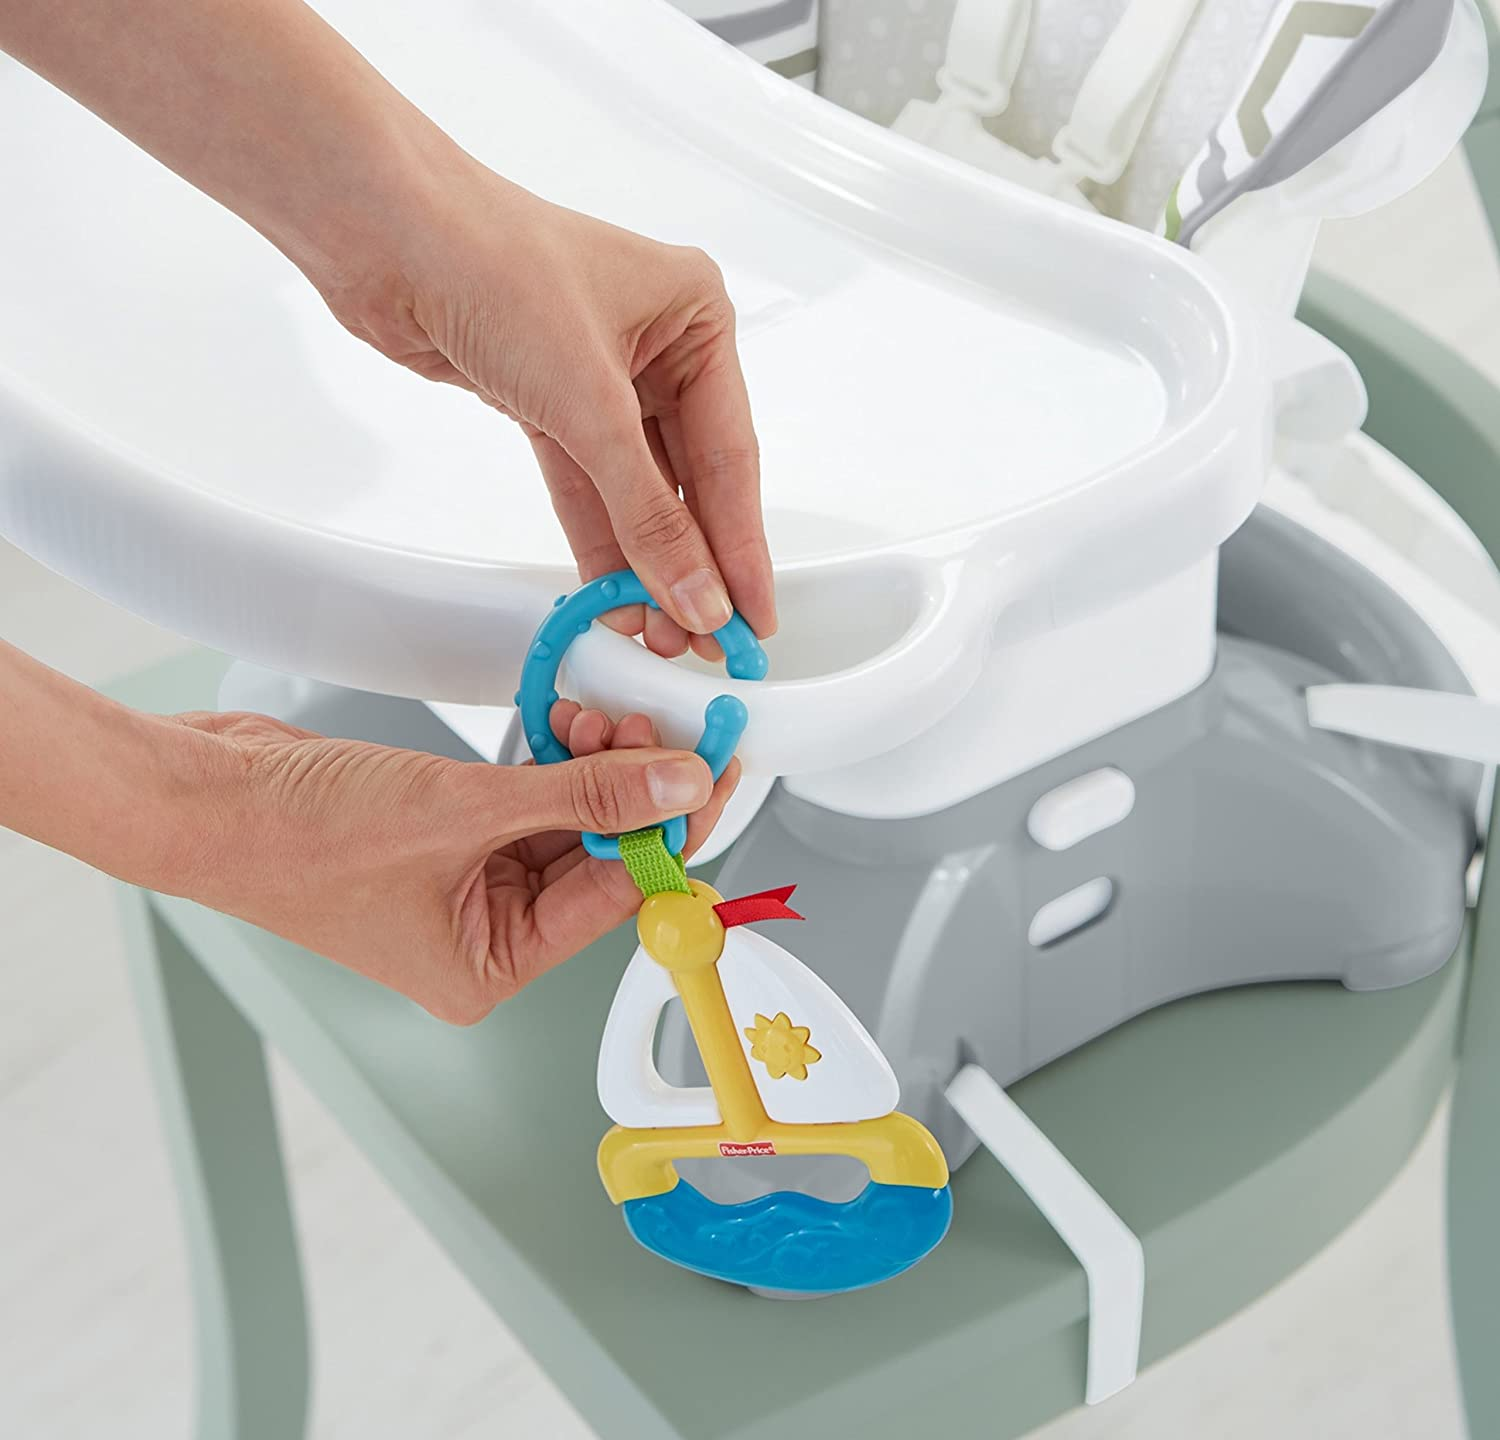 Fisher-Price SpaceSaver High Chair Geo Meadow